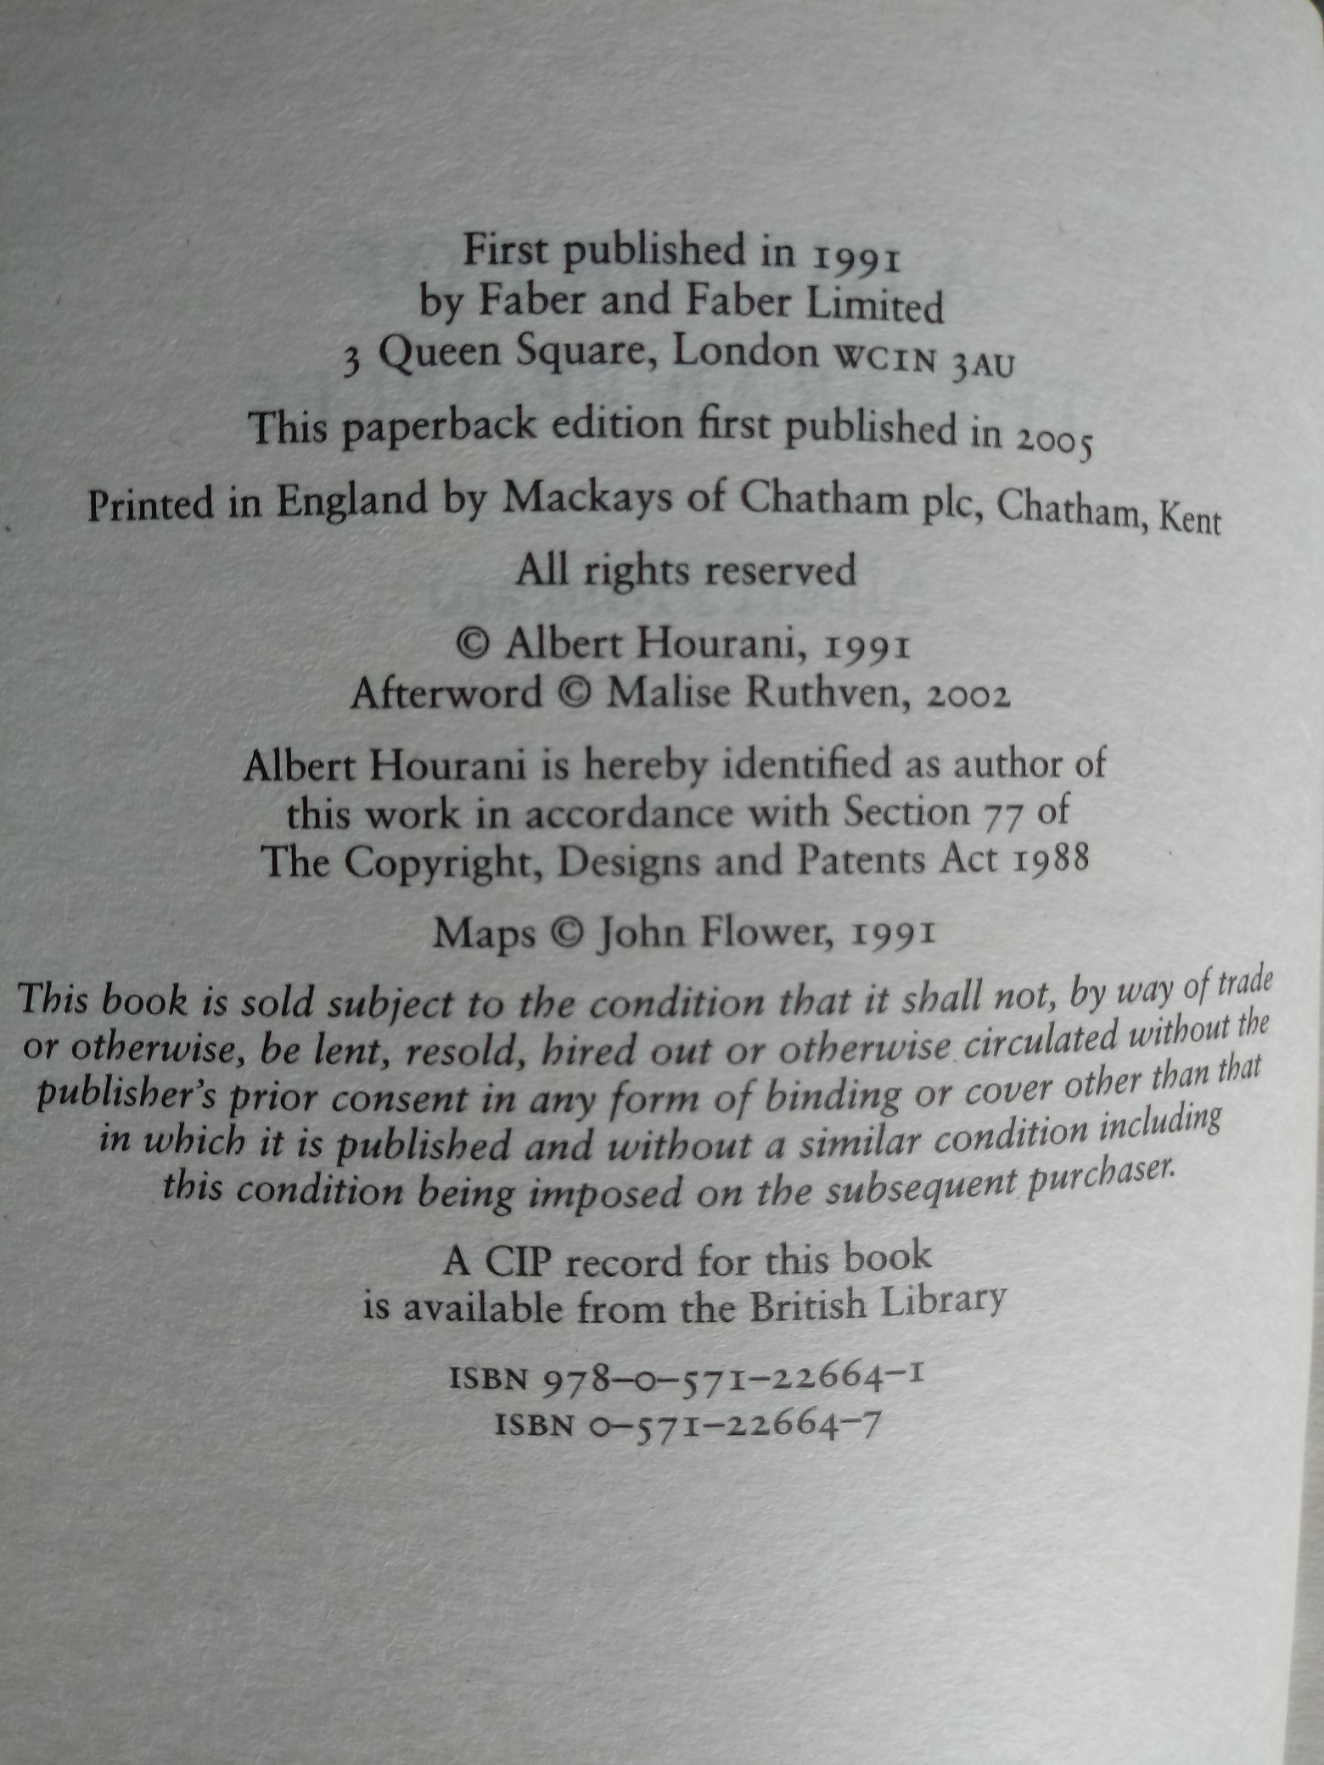 A History Of The Arab People paperback book by Albert Hourani. Published 2005 Faber & Faber. 566 - Image 2 of 2